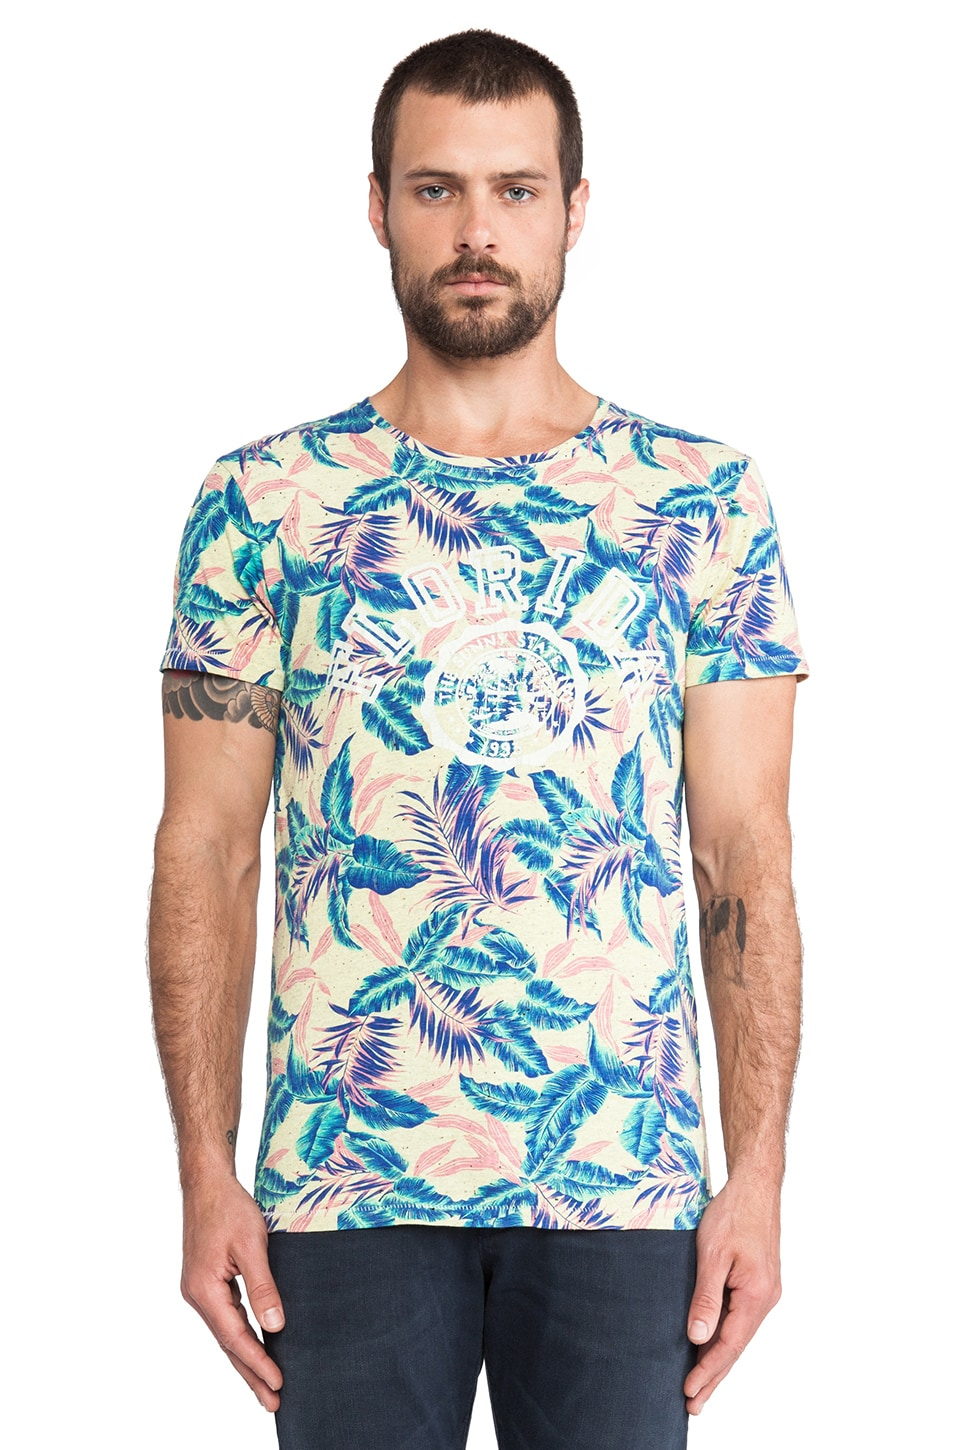 Scotch & Soda Allover Printed Tee in Yellow & Multi